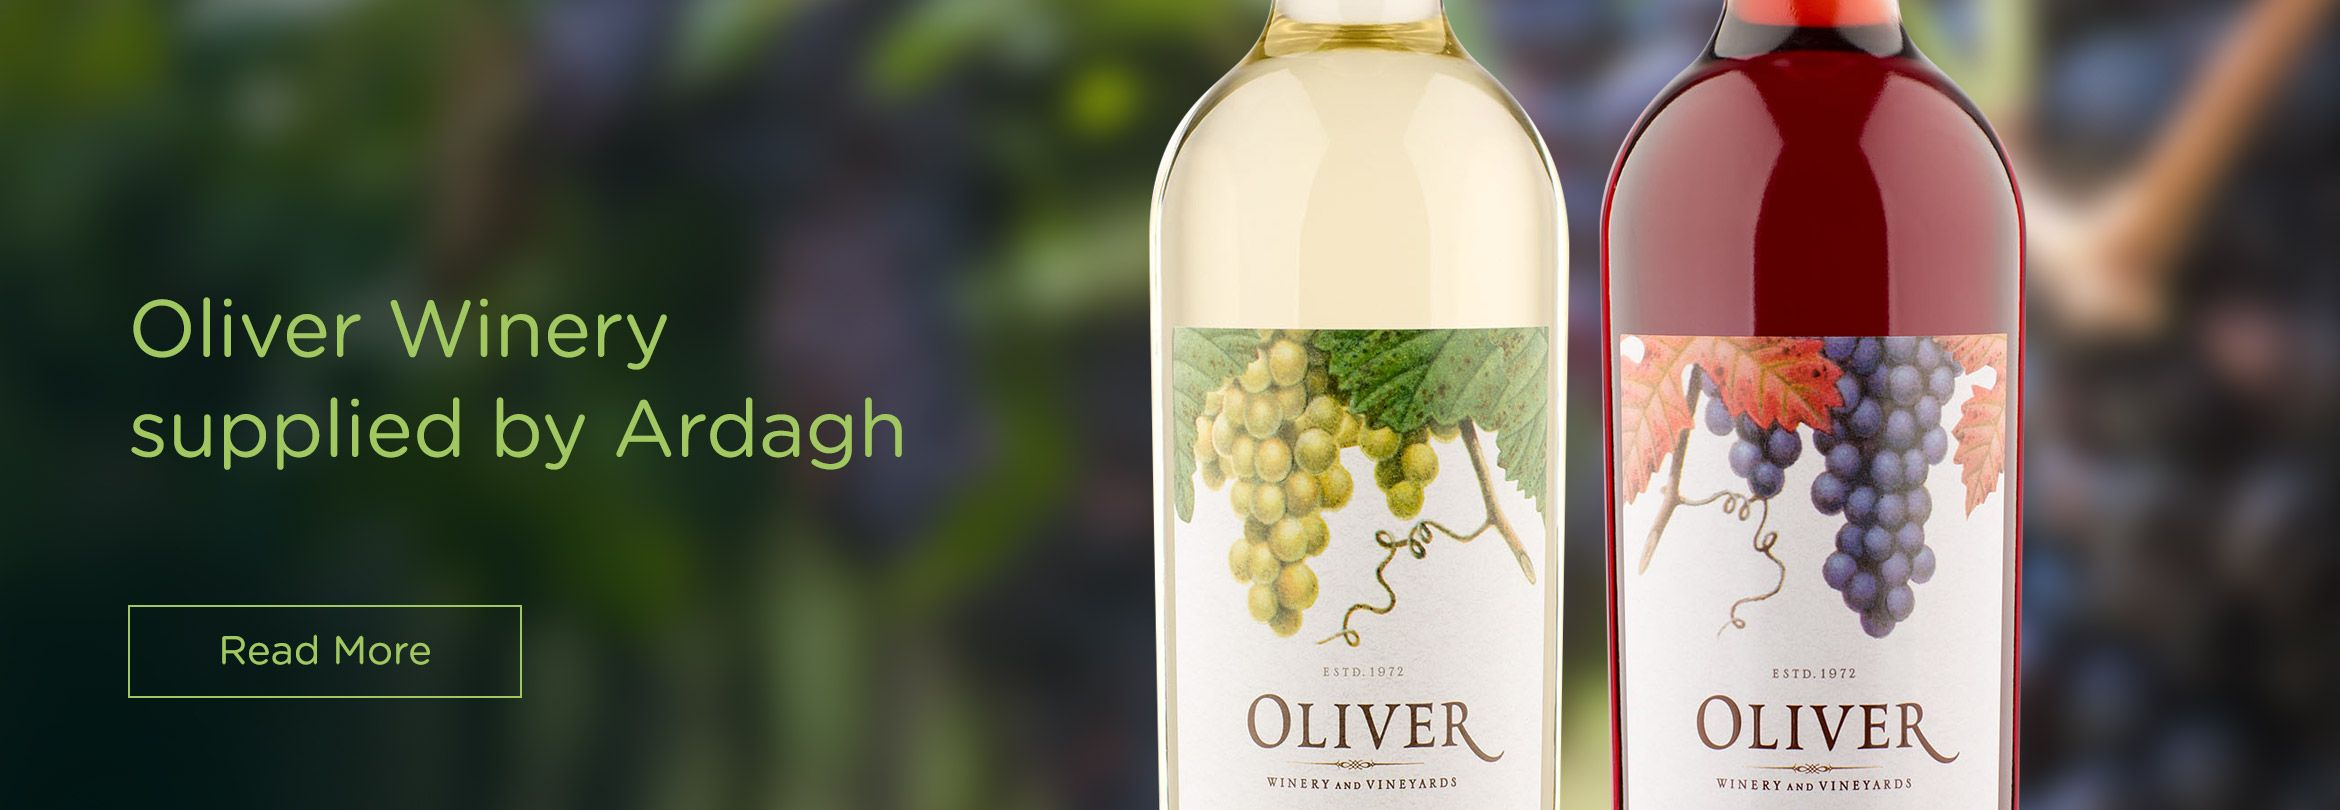 Oliver Winery Announces Agreement with Ardagh Group